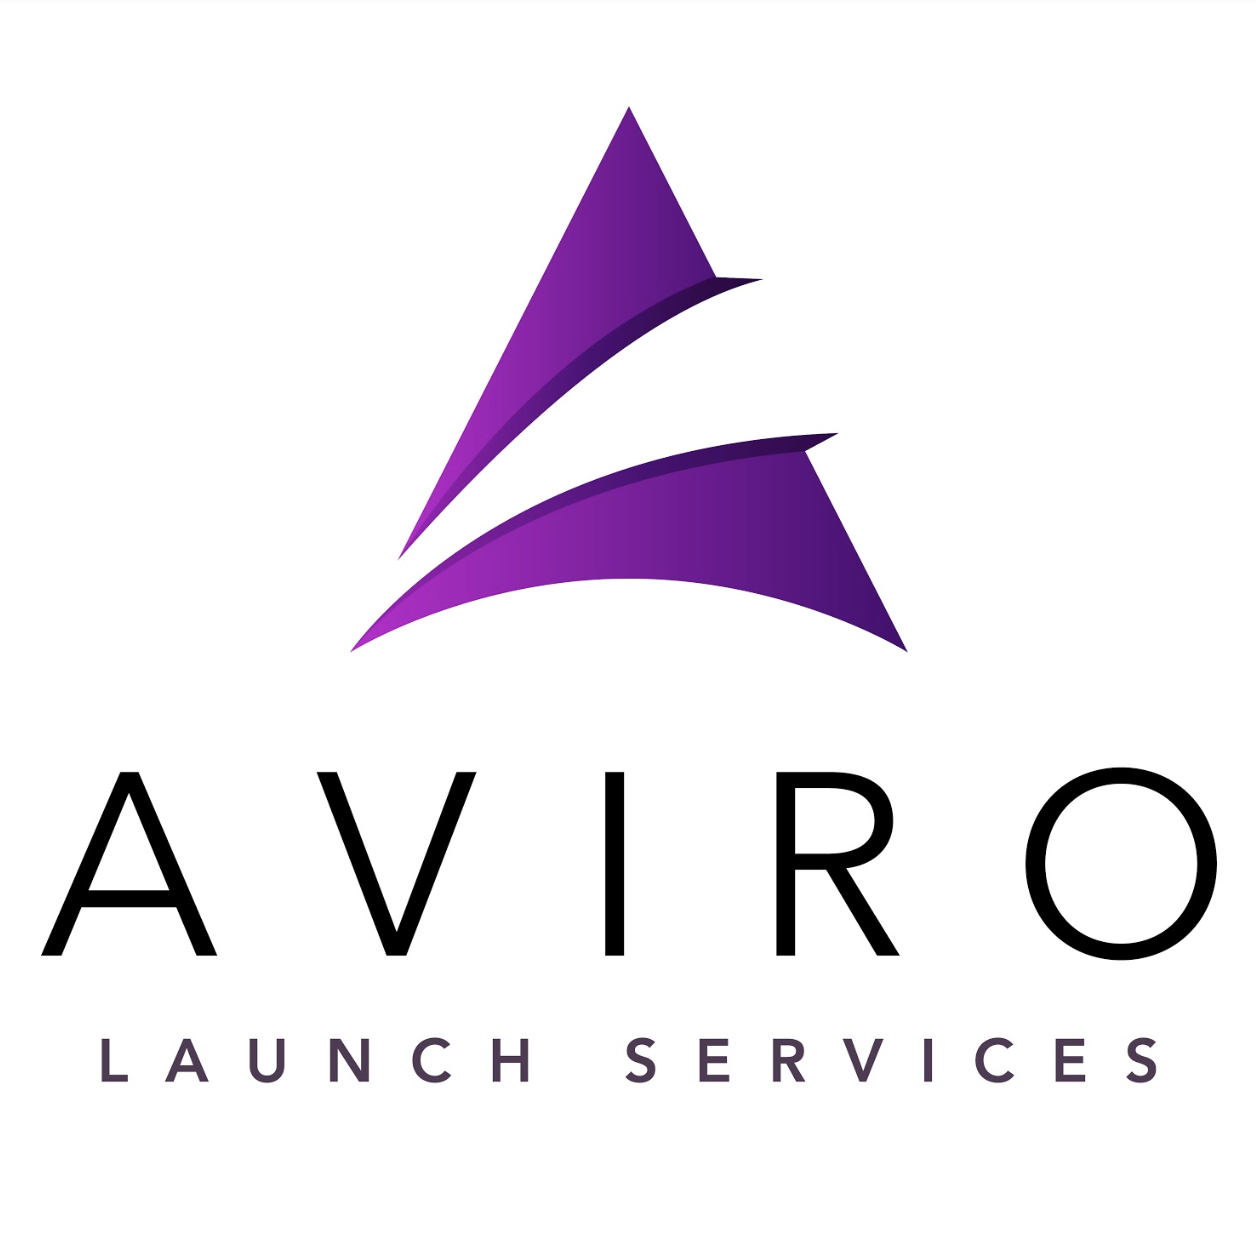 Aviro Launch Services